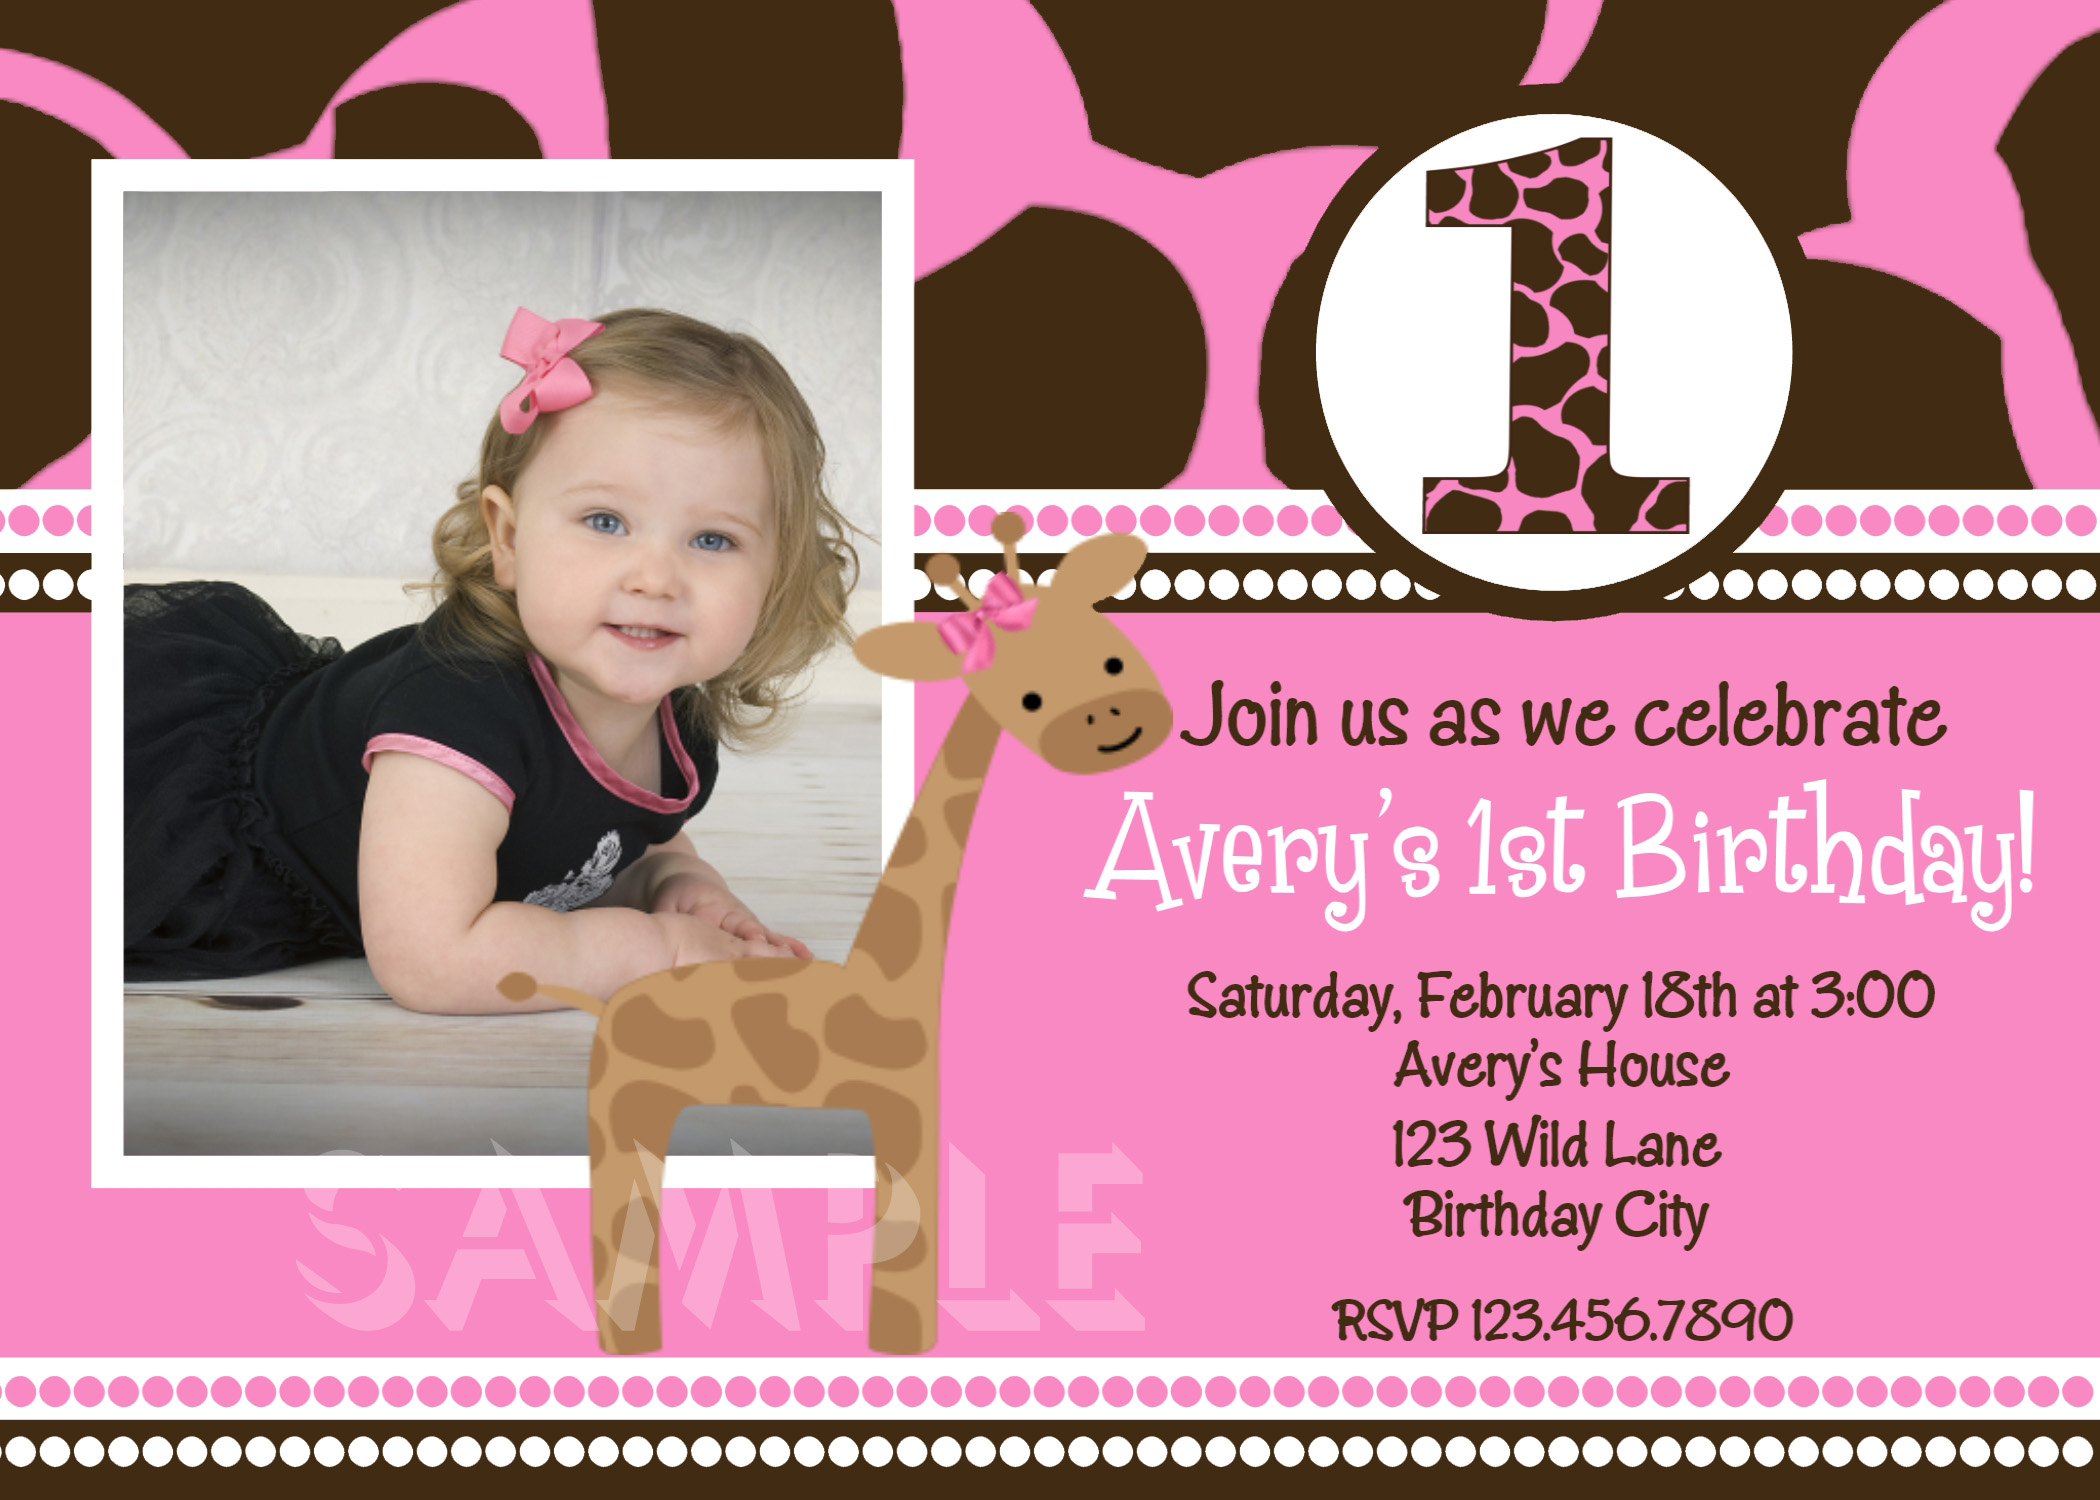 Printable birthday invitations girls pink giraffe first party girls printable birthday invites filmwisefo